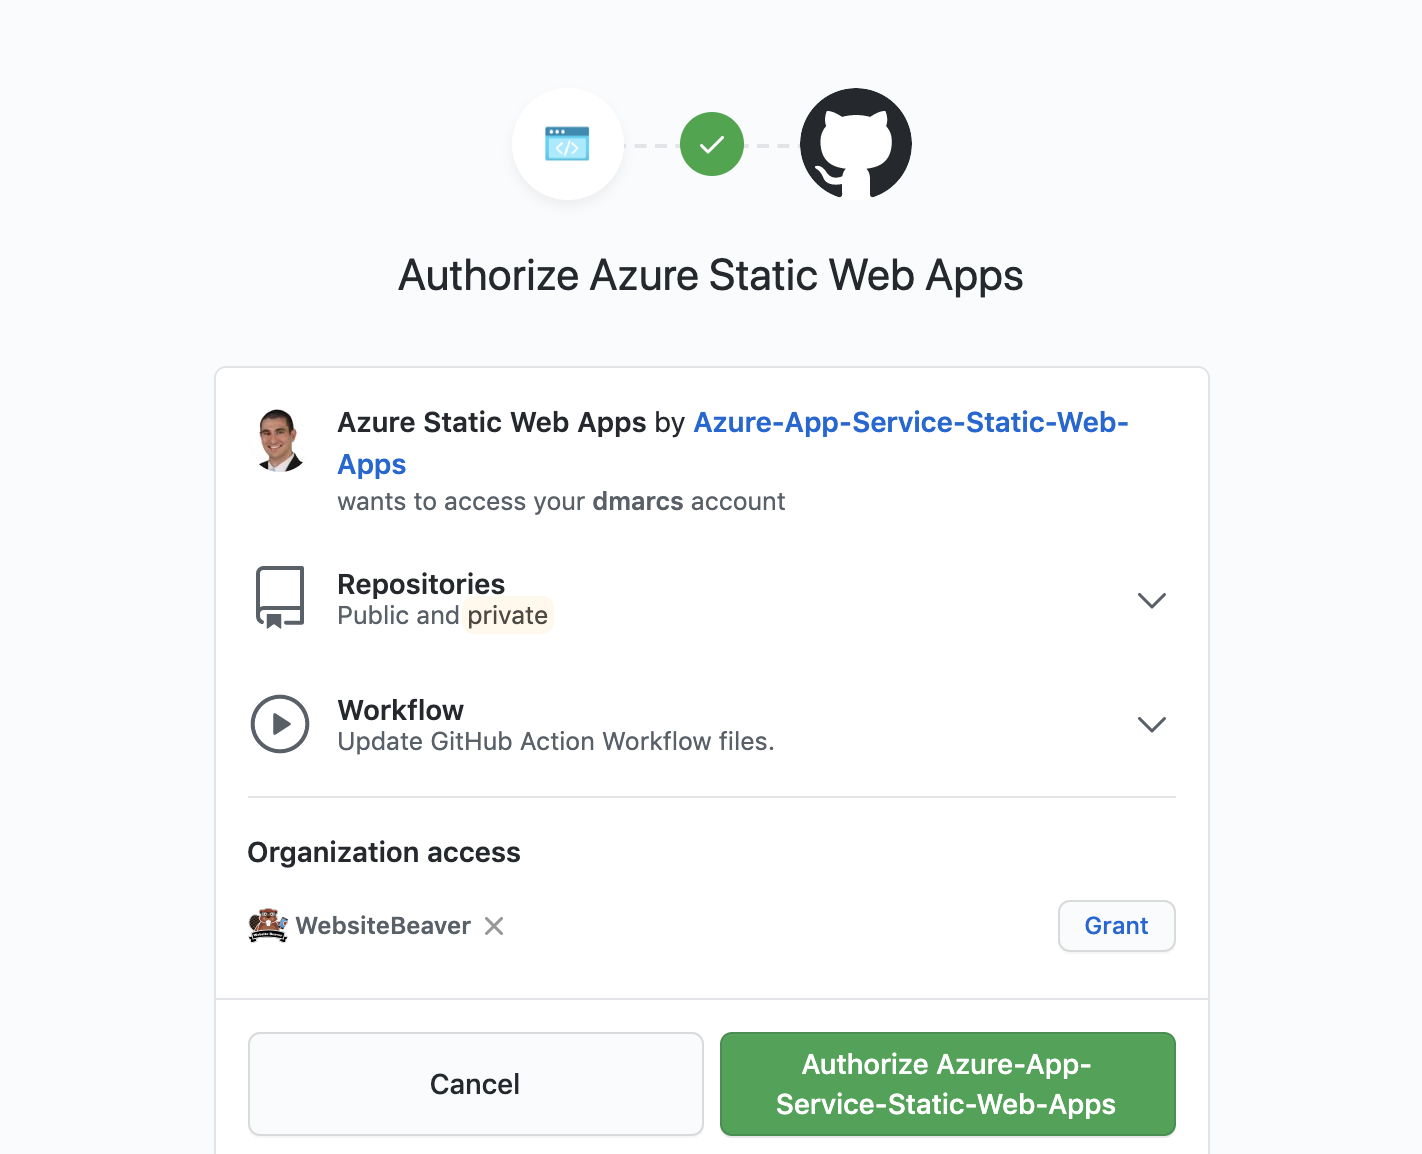 Authorize Azure Static Web Apps